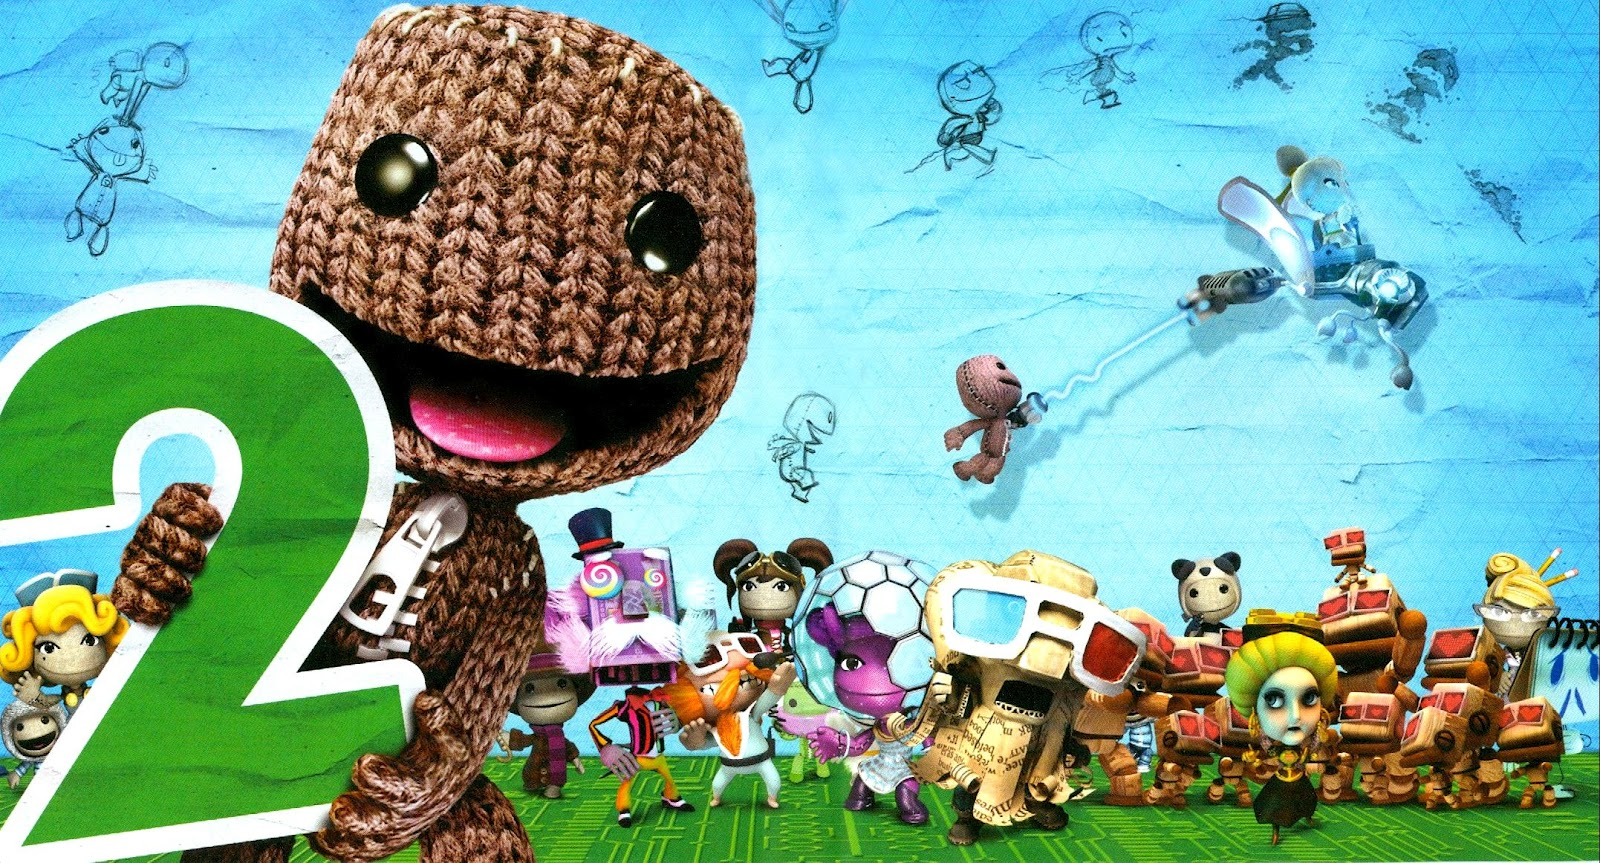 Little Big Planet Wallpaper: LittleBigPlanet 2